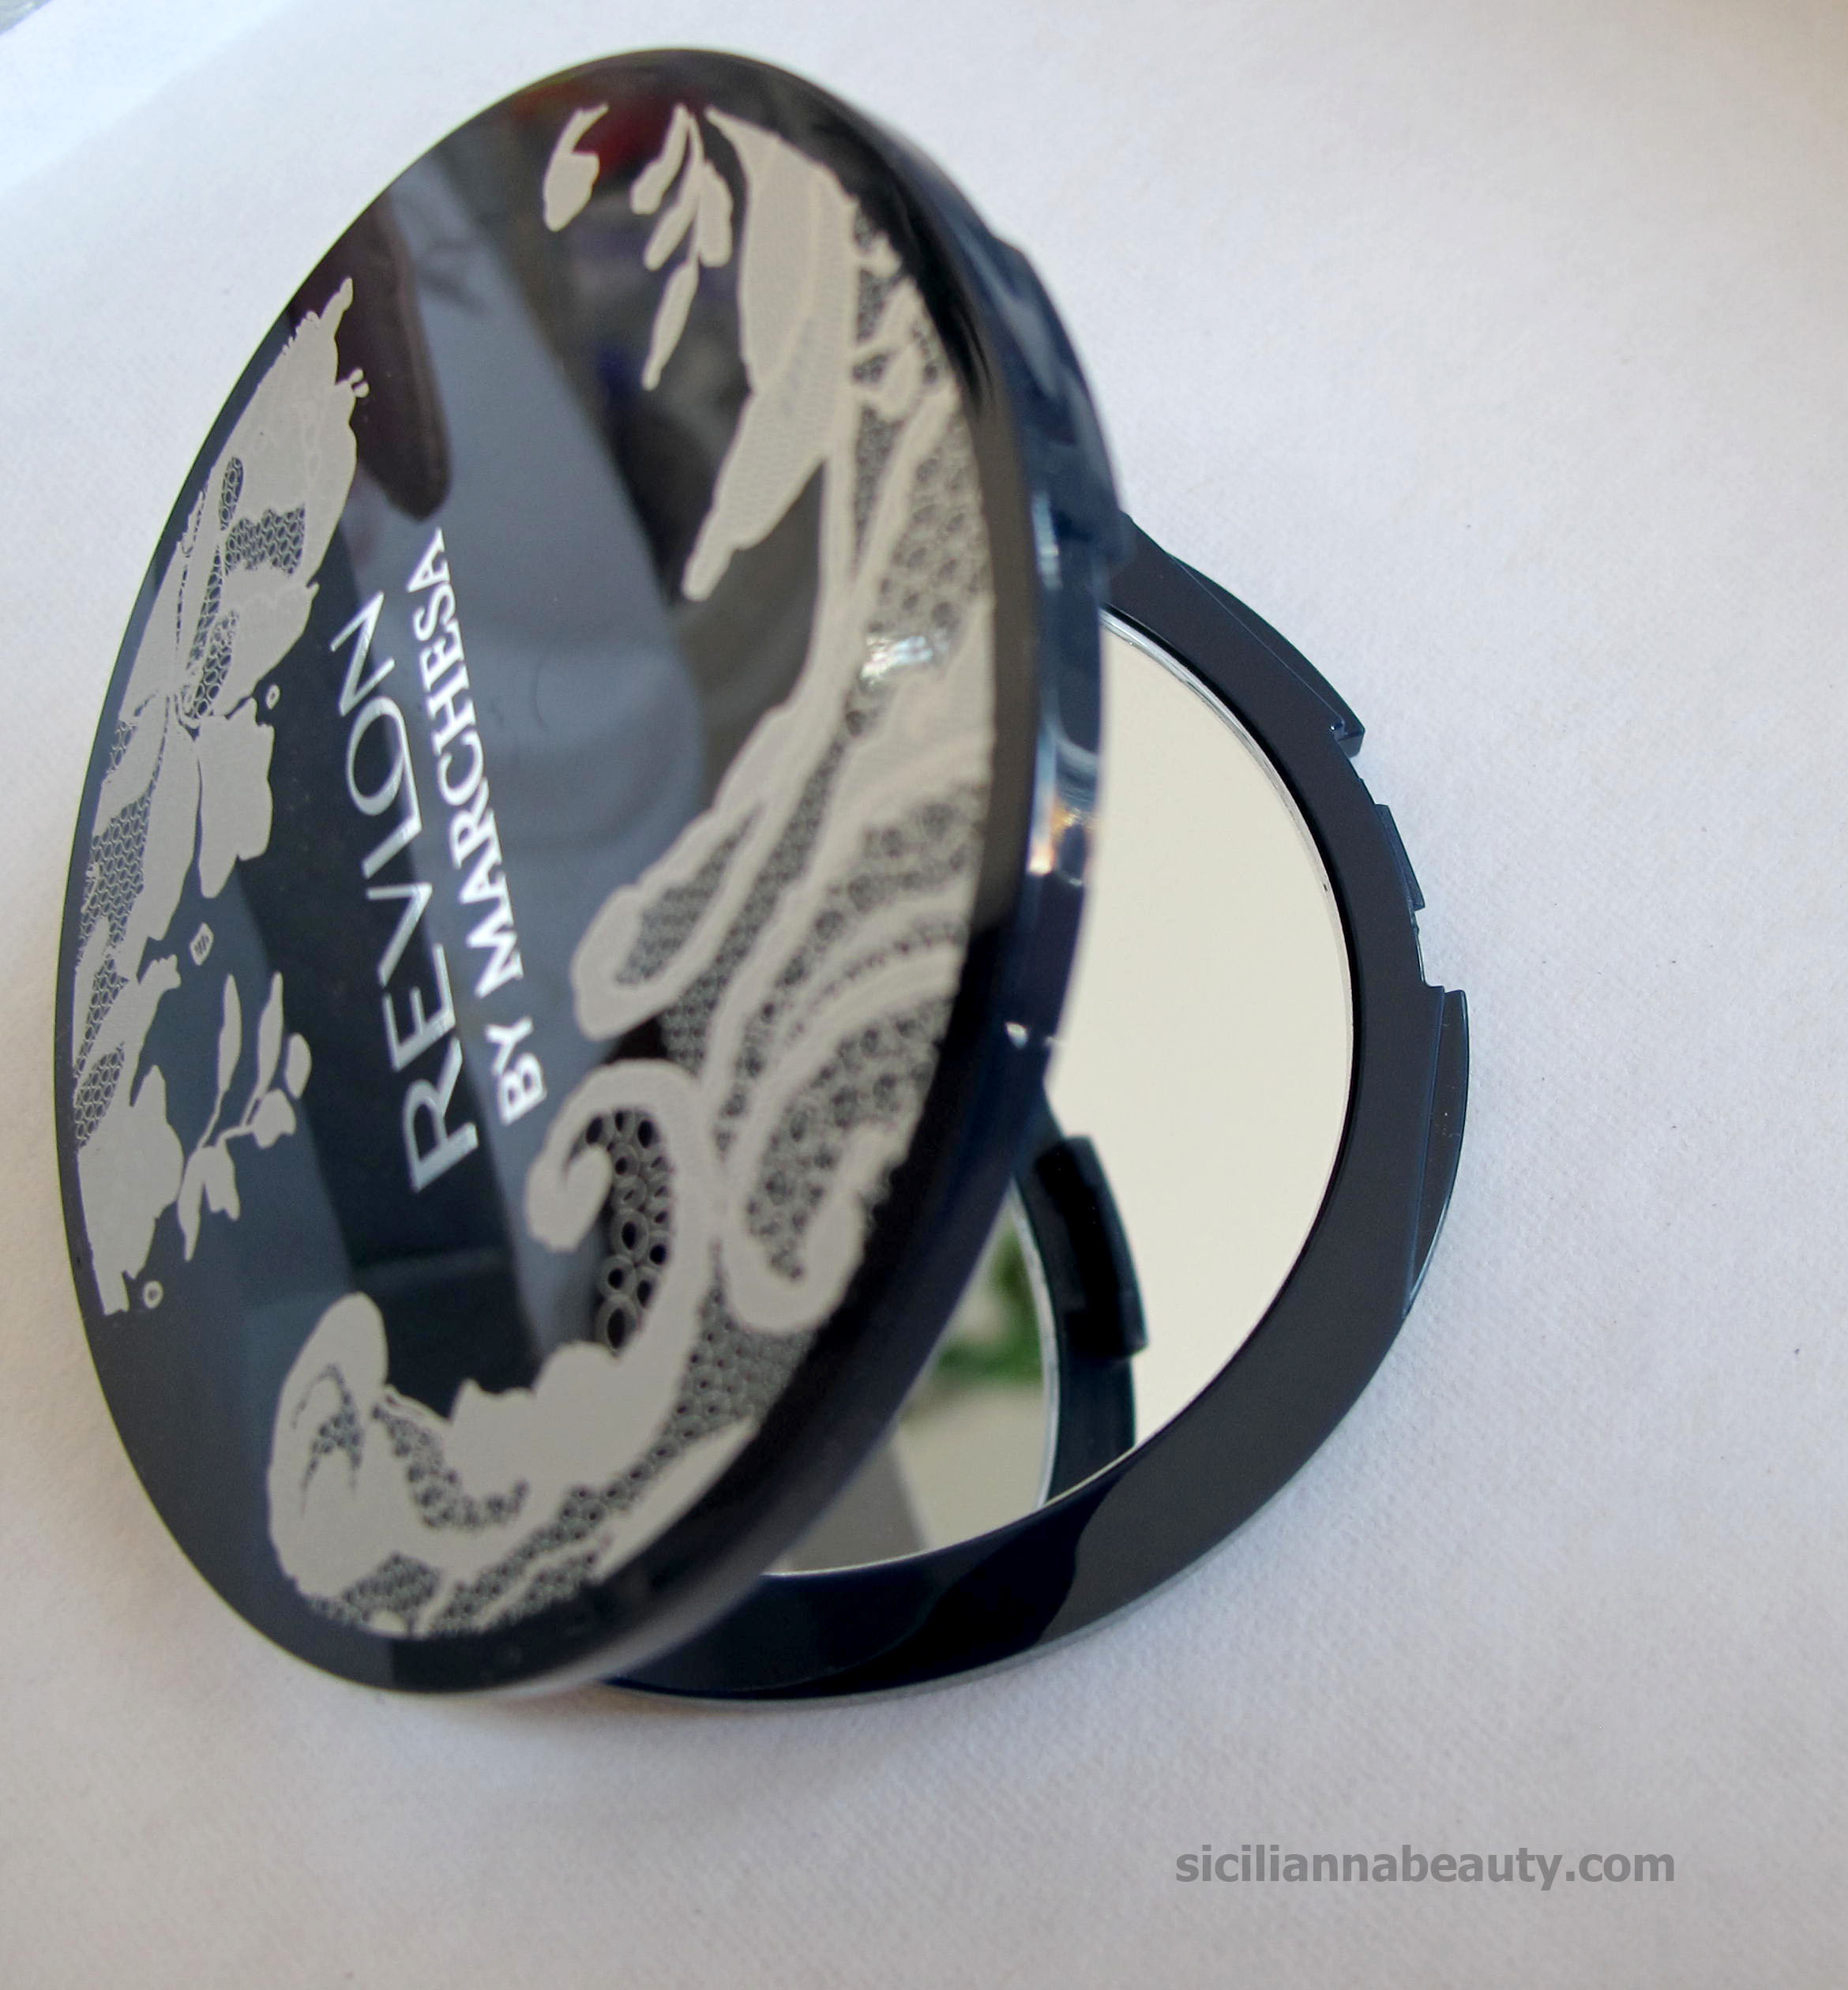 c6ffca55bab GIVEAWAY: Revlon by Marchesa Beauty Tools... Yes the WHOLE ...